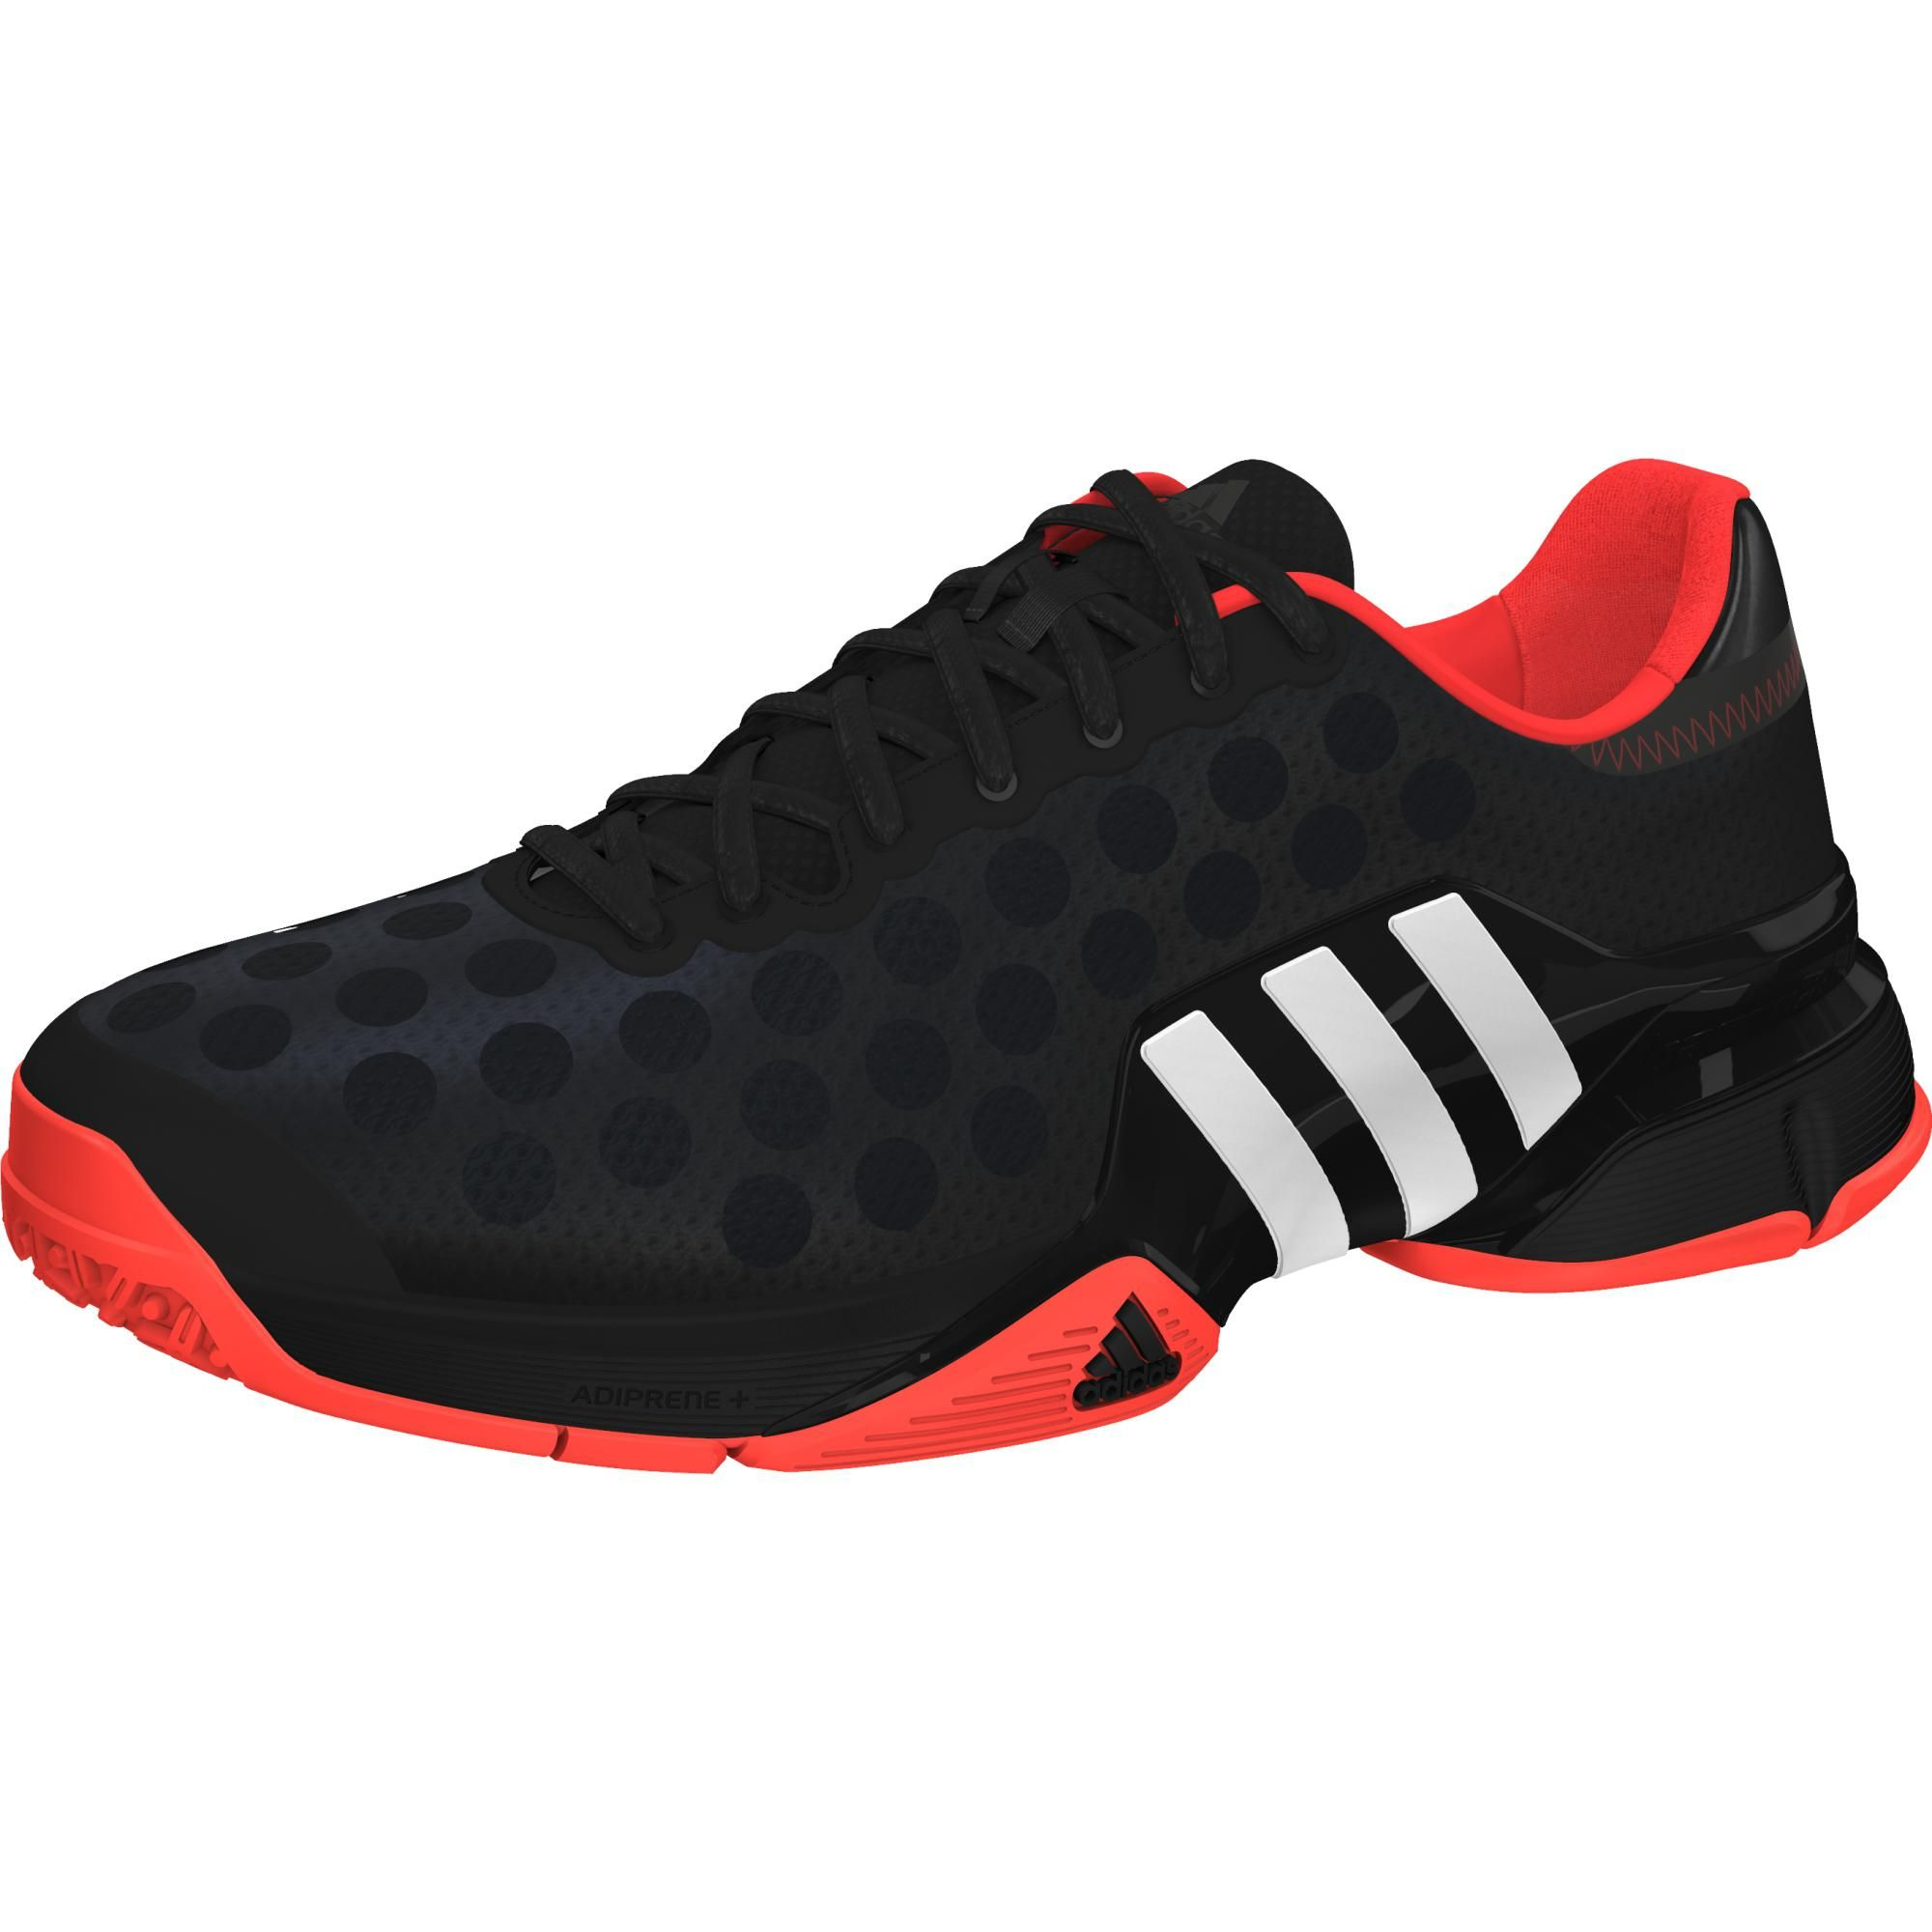 adidas homme chaussures 2015